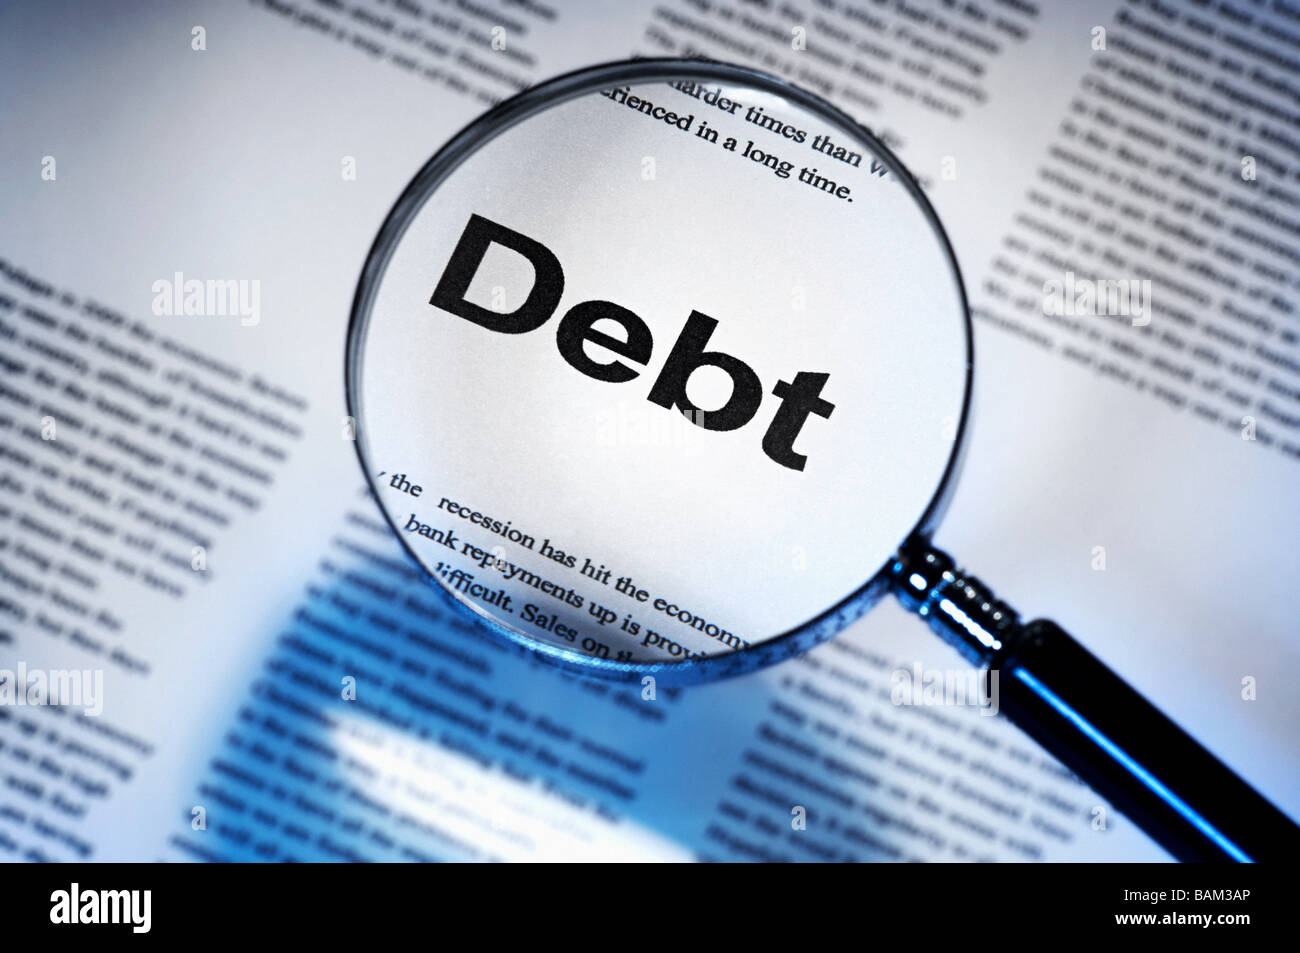 Word debt under magnifying glass - Stock Image